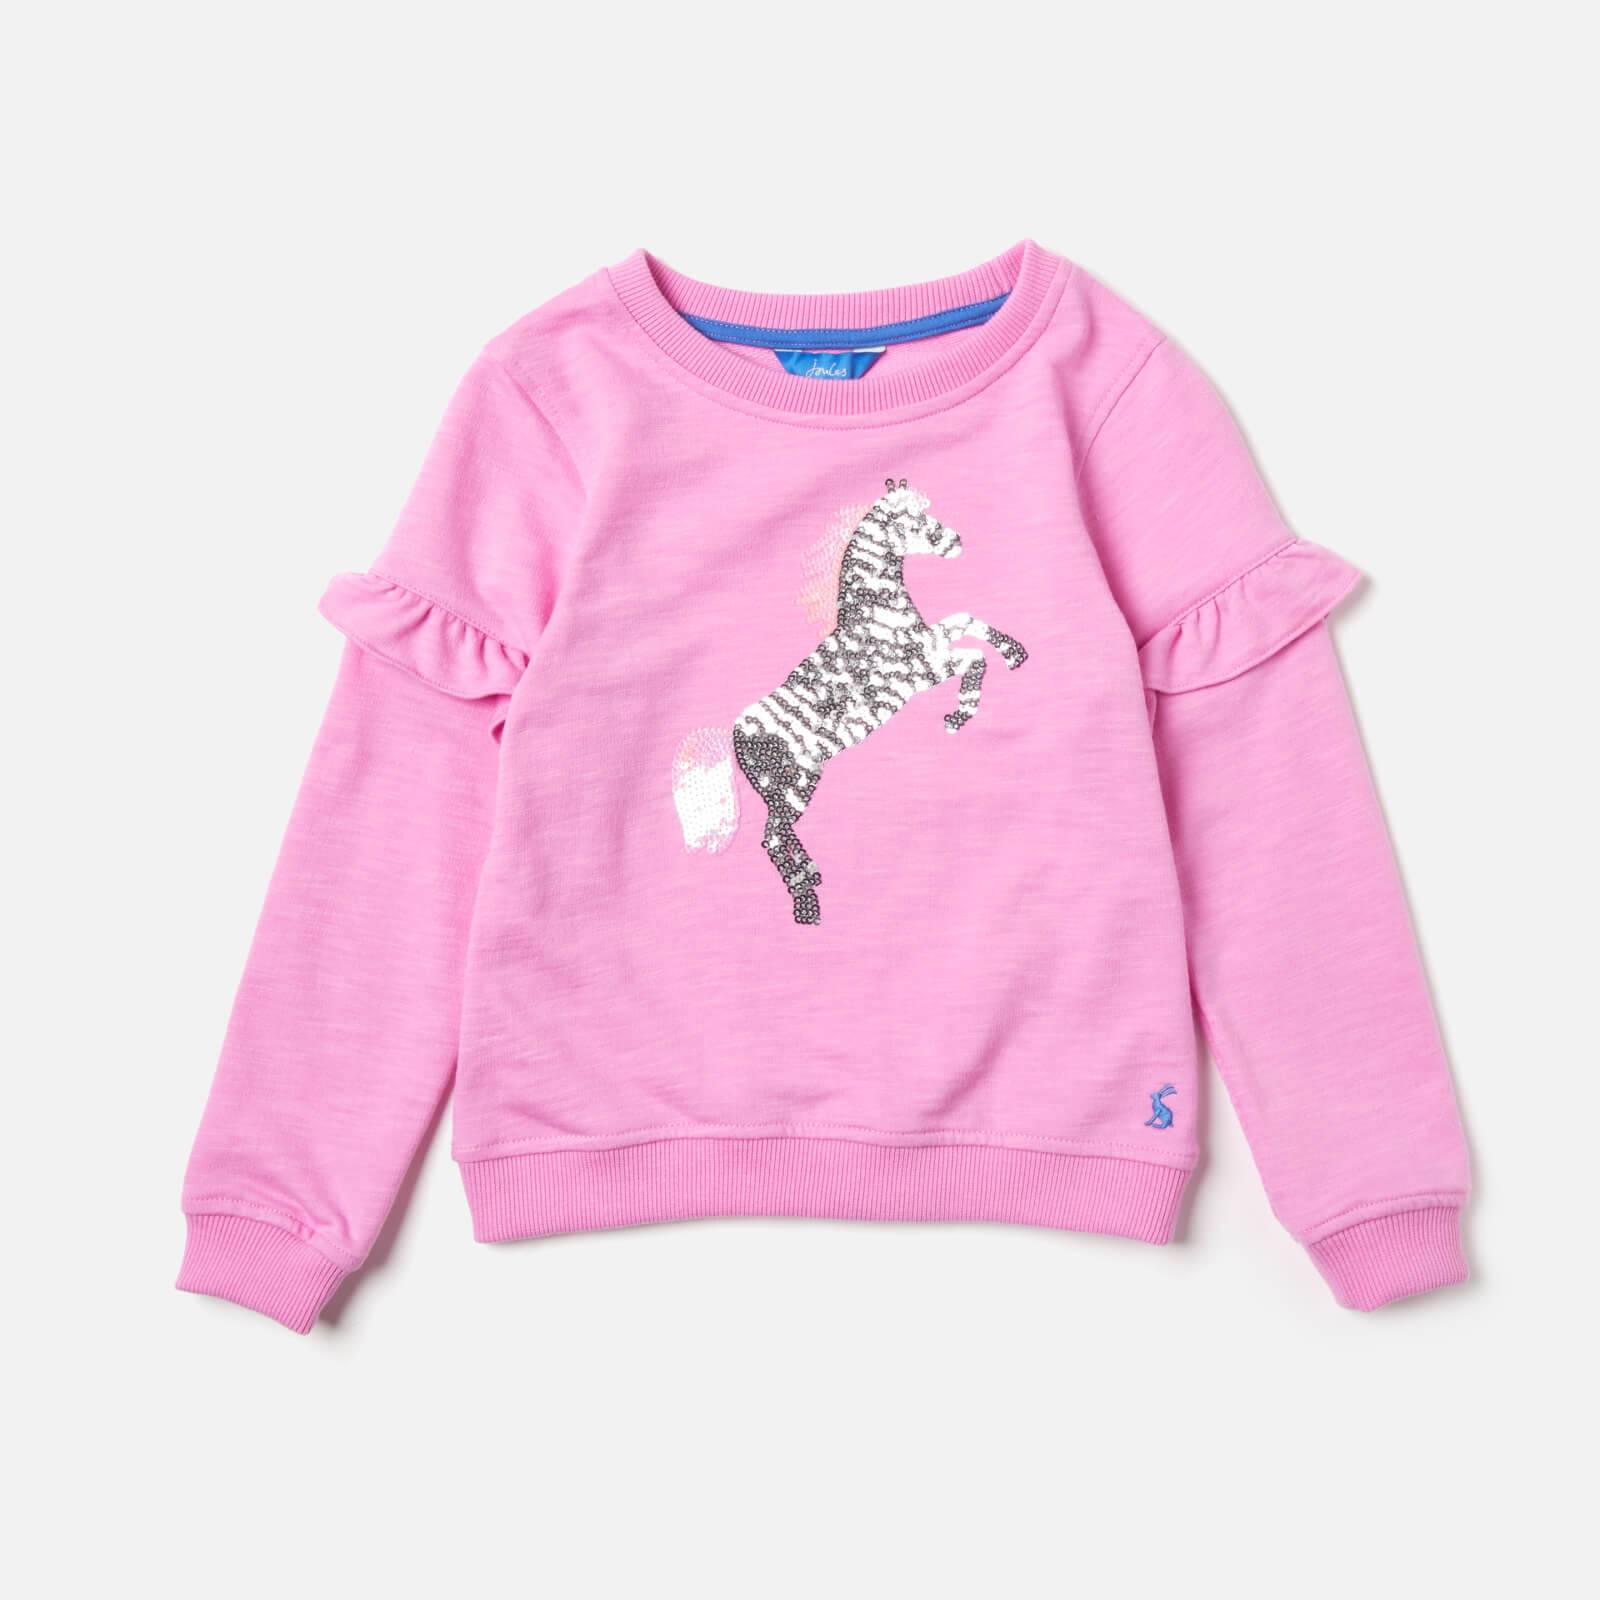 Joules Girls' Tiana Sweatshirt - Light Pink - 6 Years - Pink